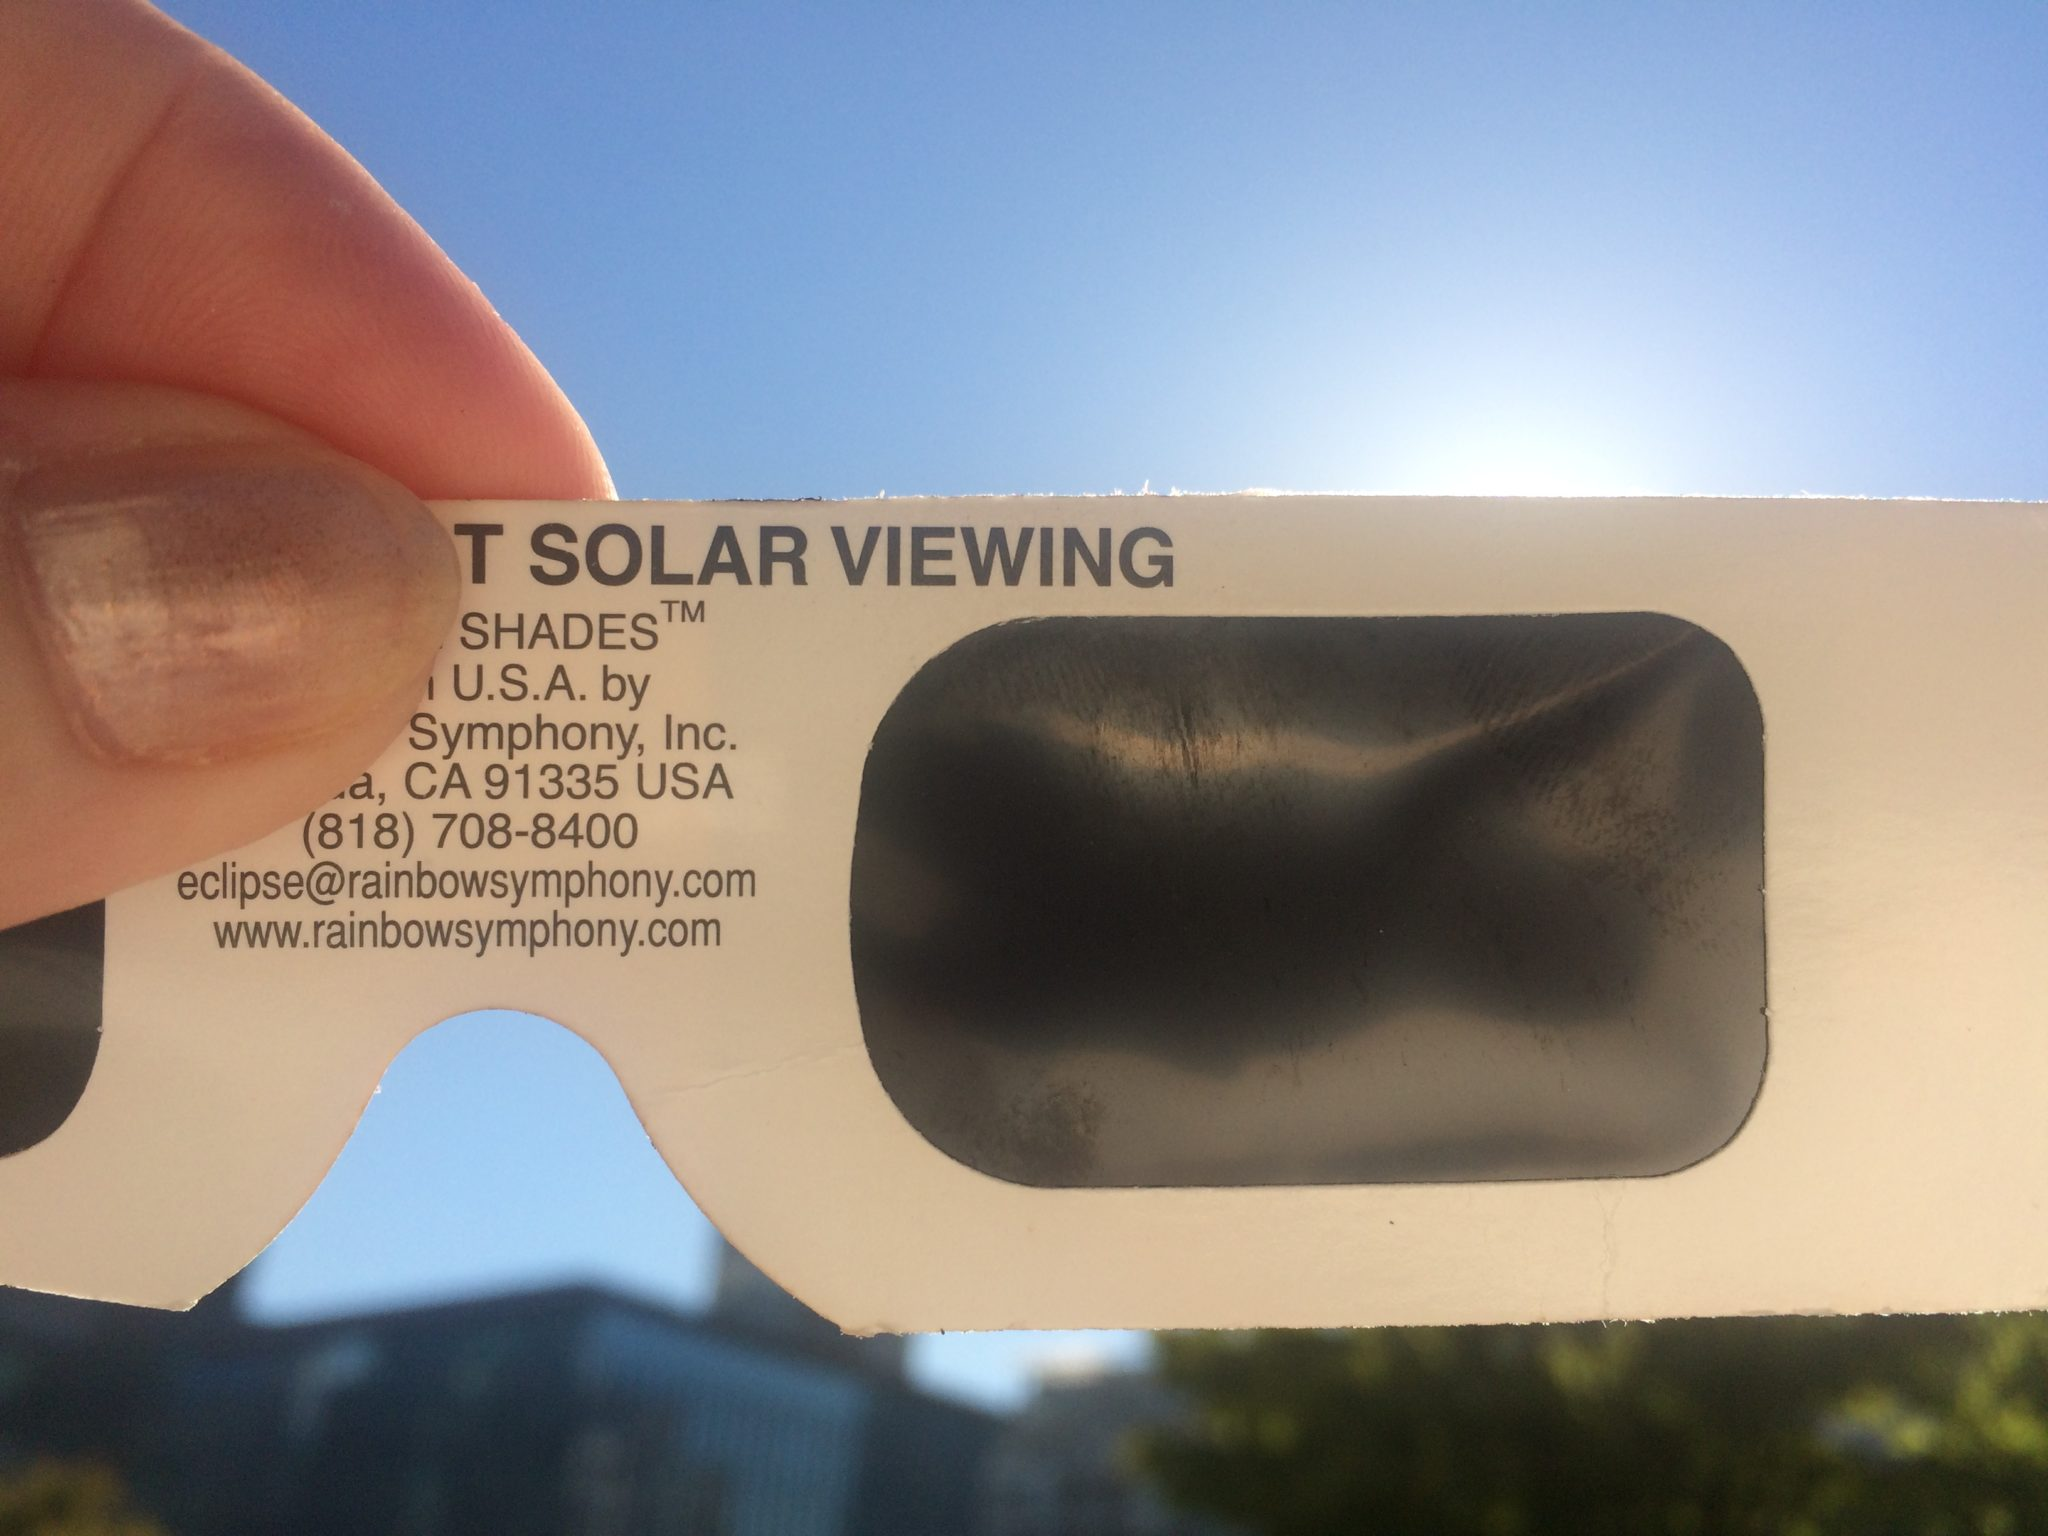 Solar Eclipse Experience from Vancouver with Alison Price – August 21, 2017